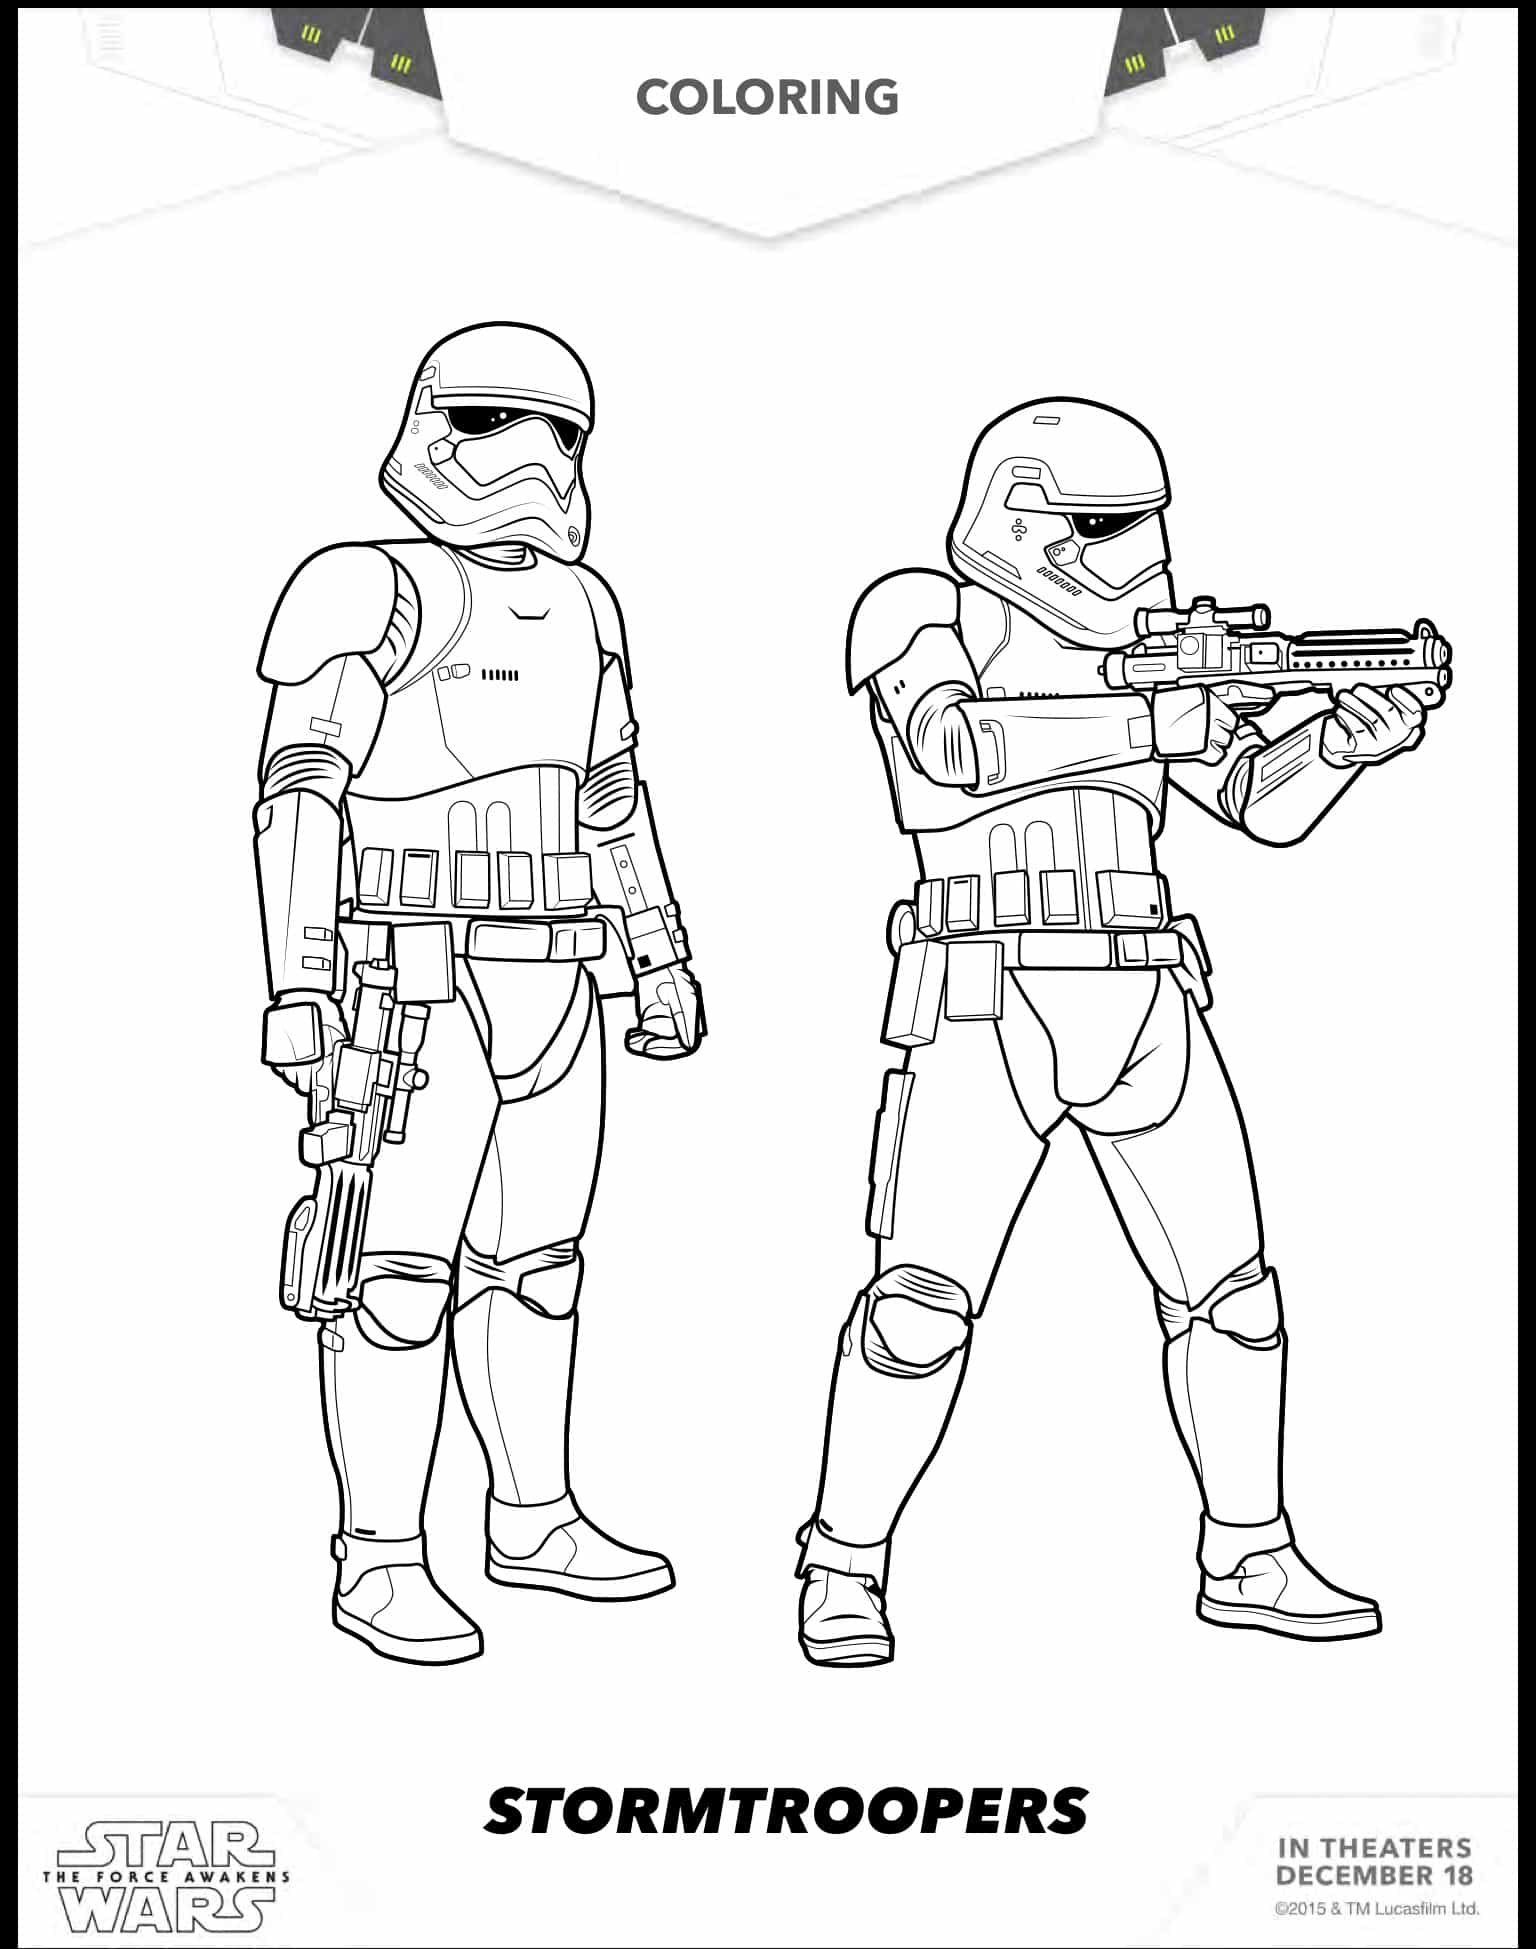 star wars pictures to print and color star wars free to color for kids star wars kids coloring pictures to star print and wars color